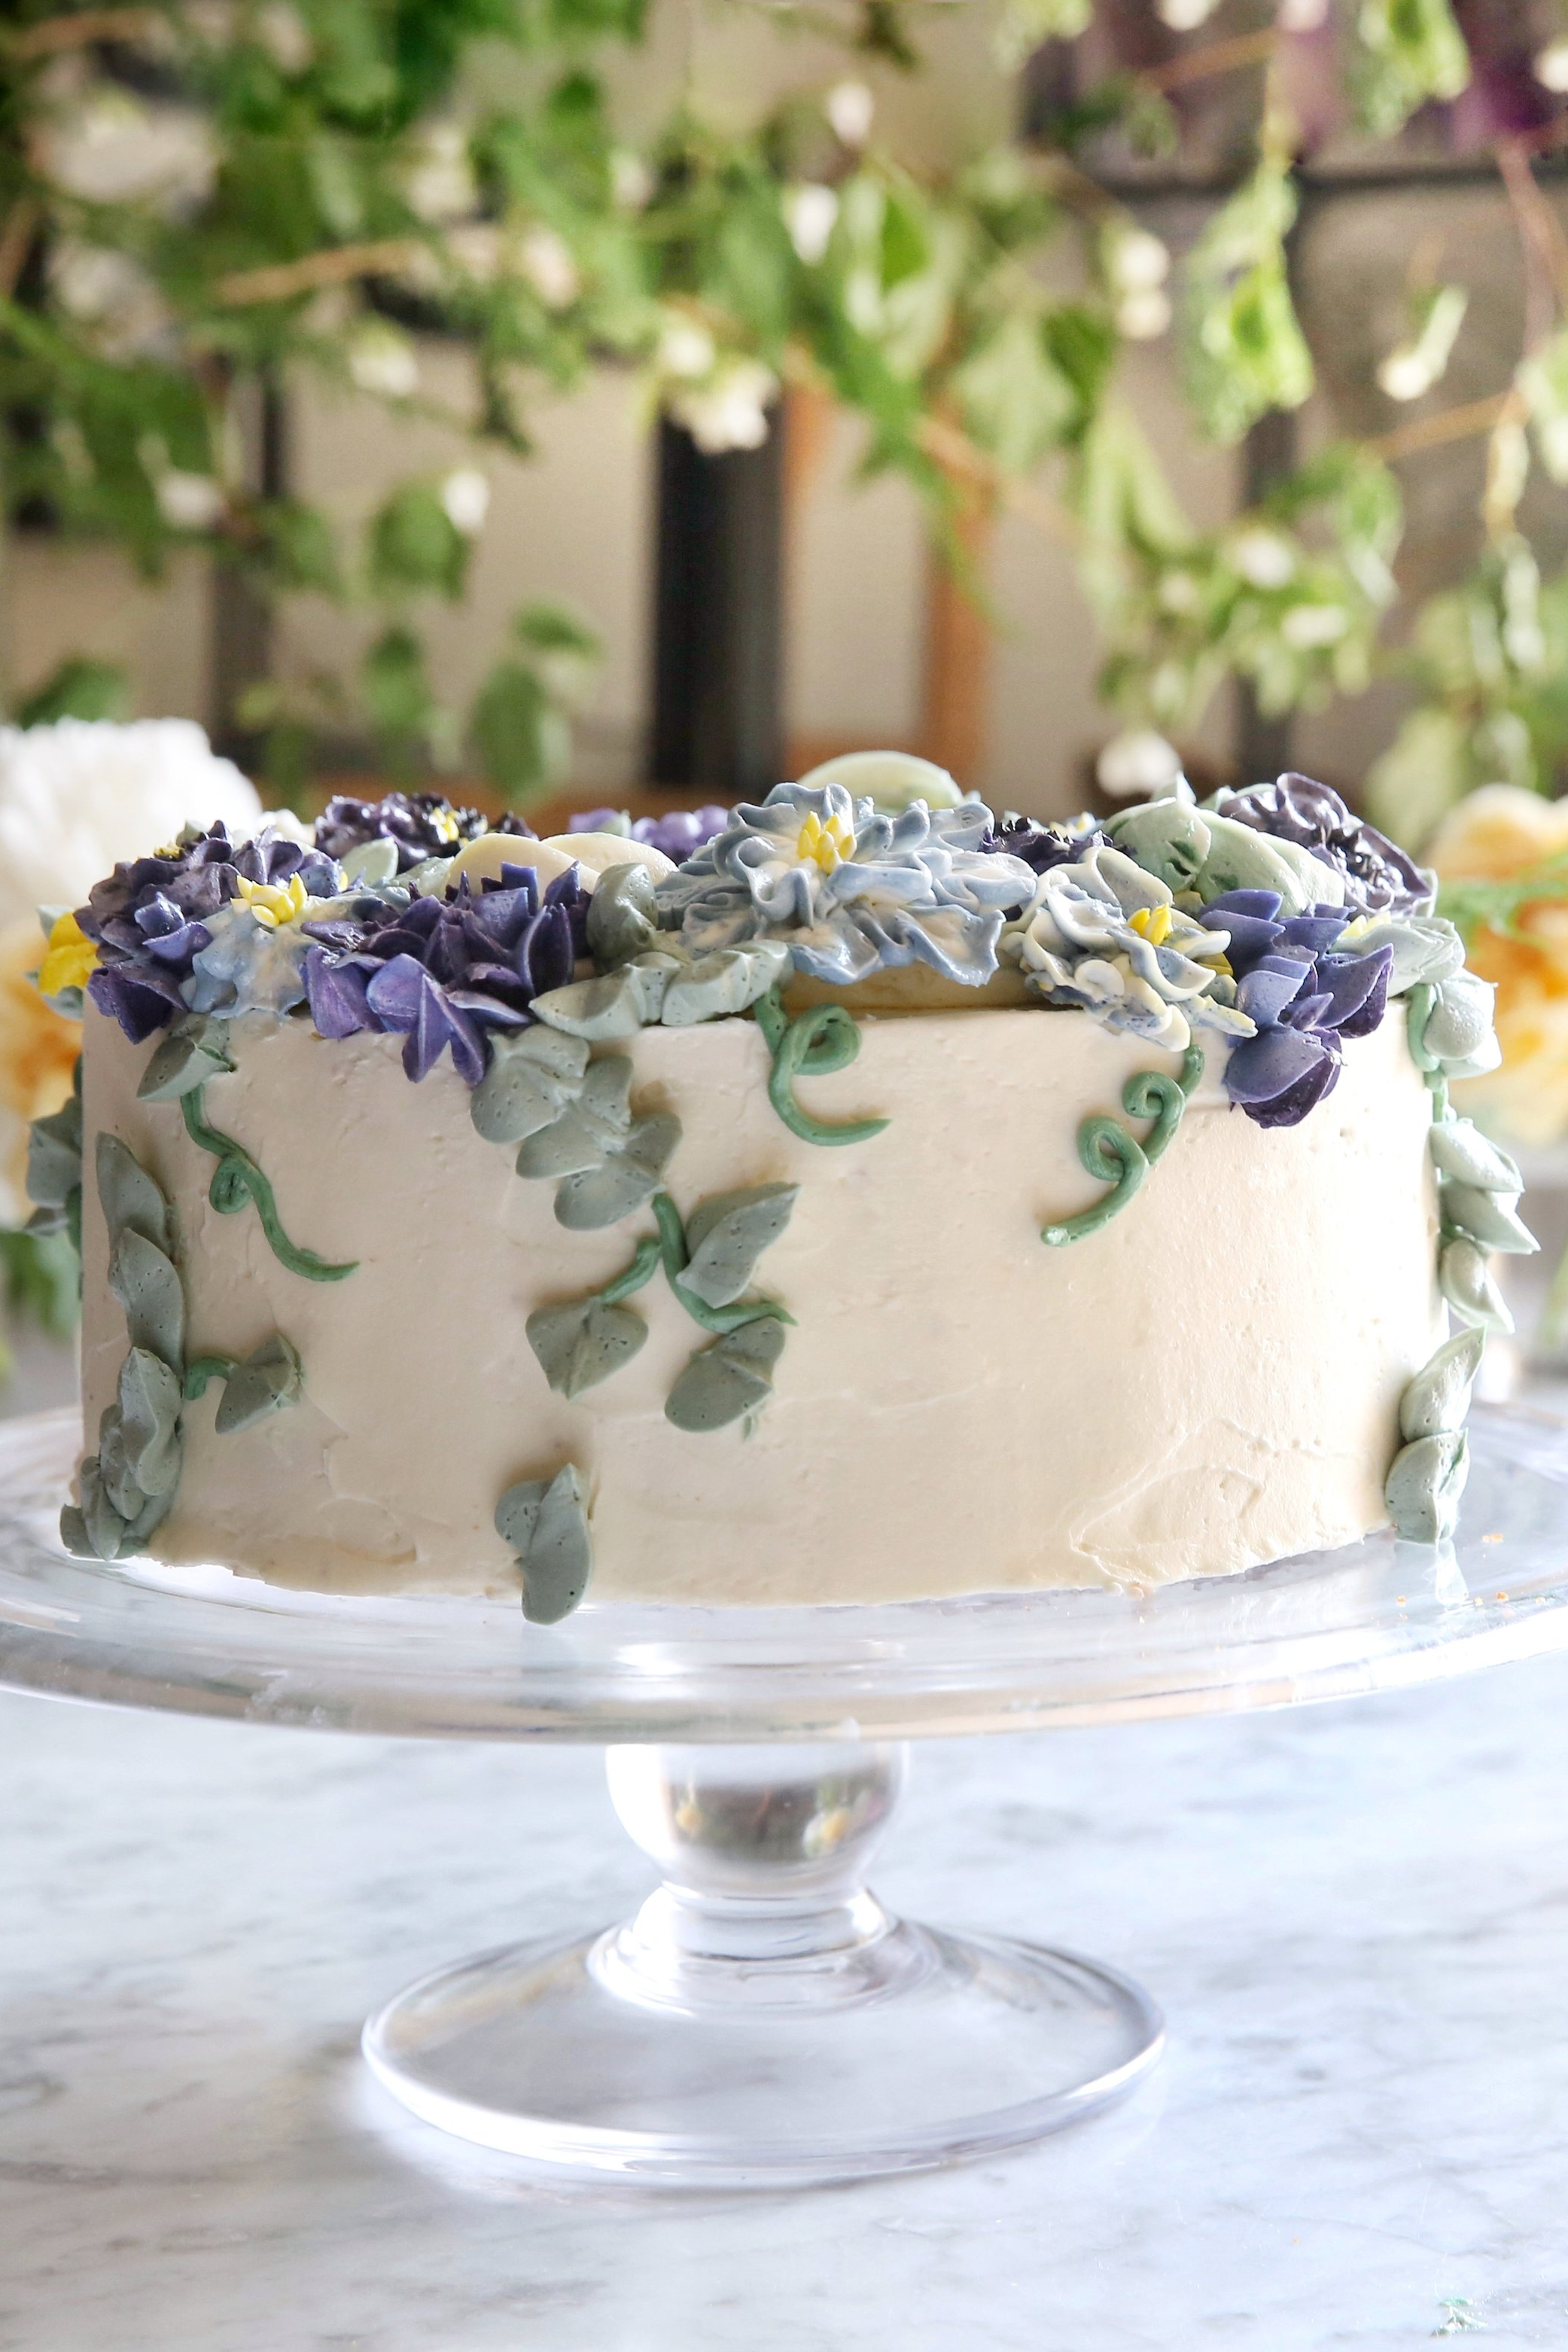 fLORAL CAKE DECORATING BASICS WORKSHOP ATTHE KITCHEN TABLE - OCTOBER 12, 2018EVENING